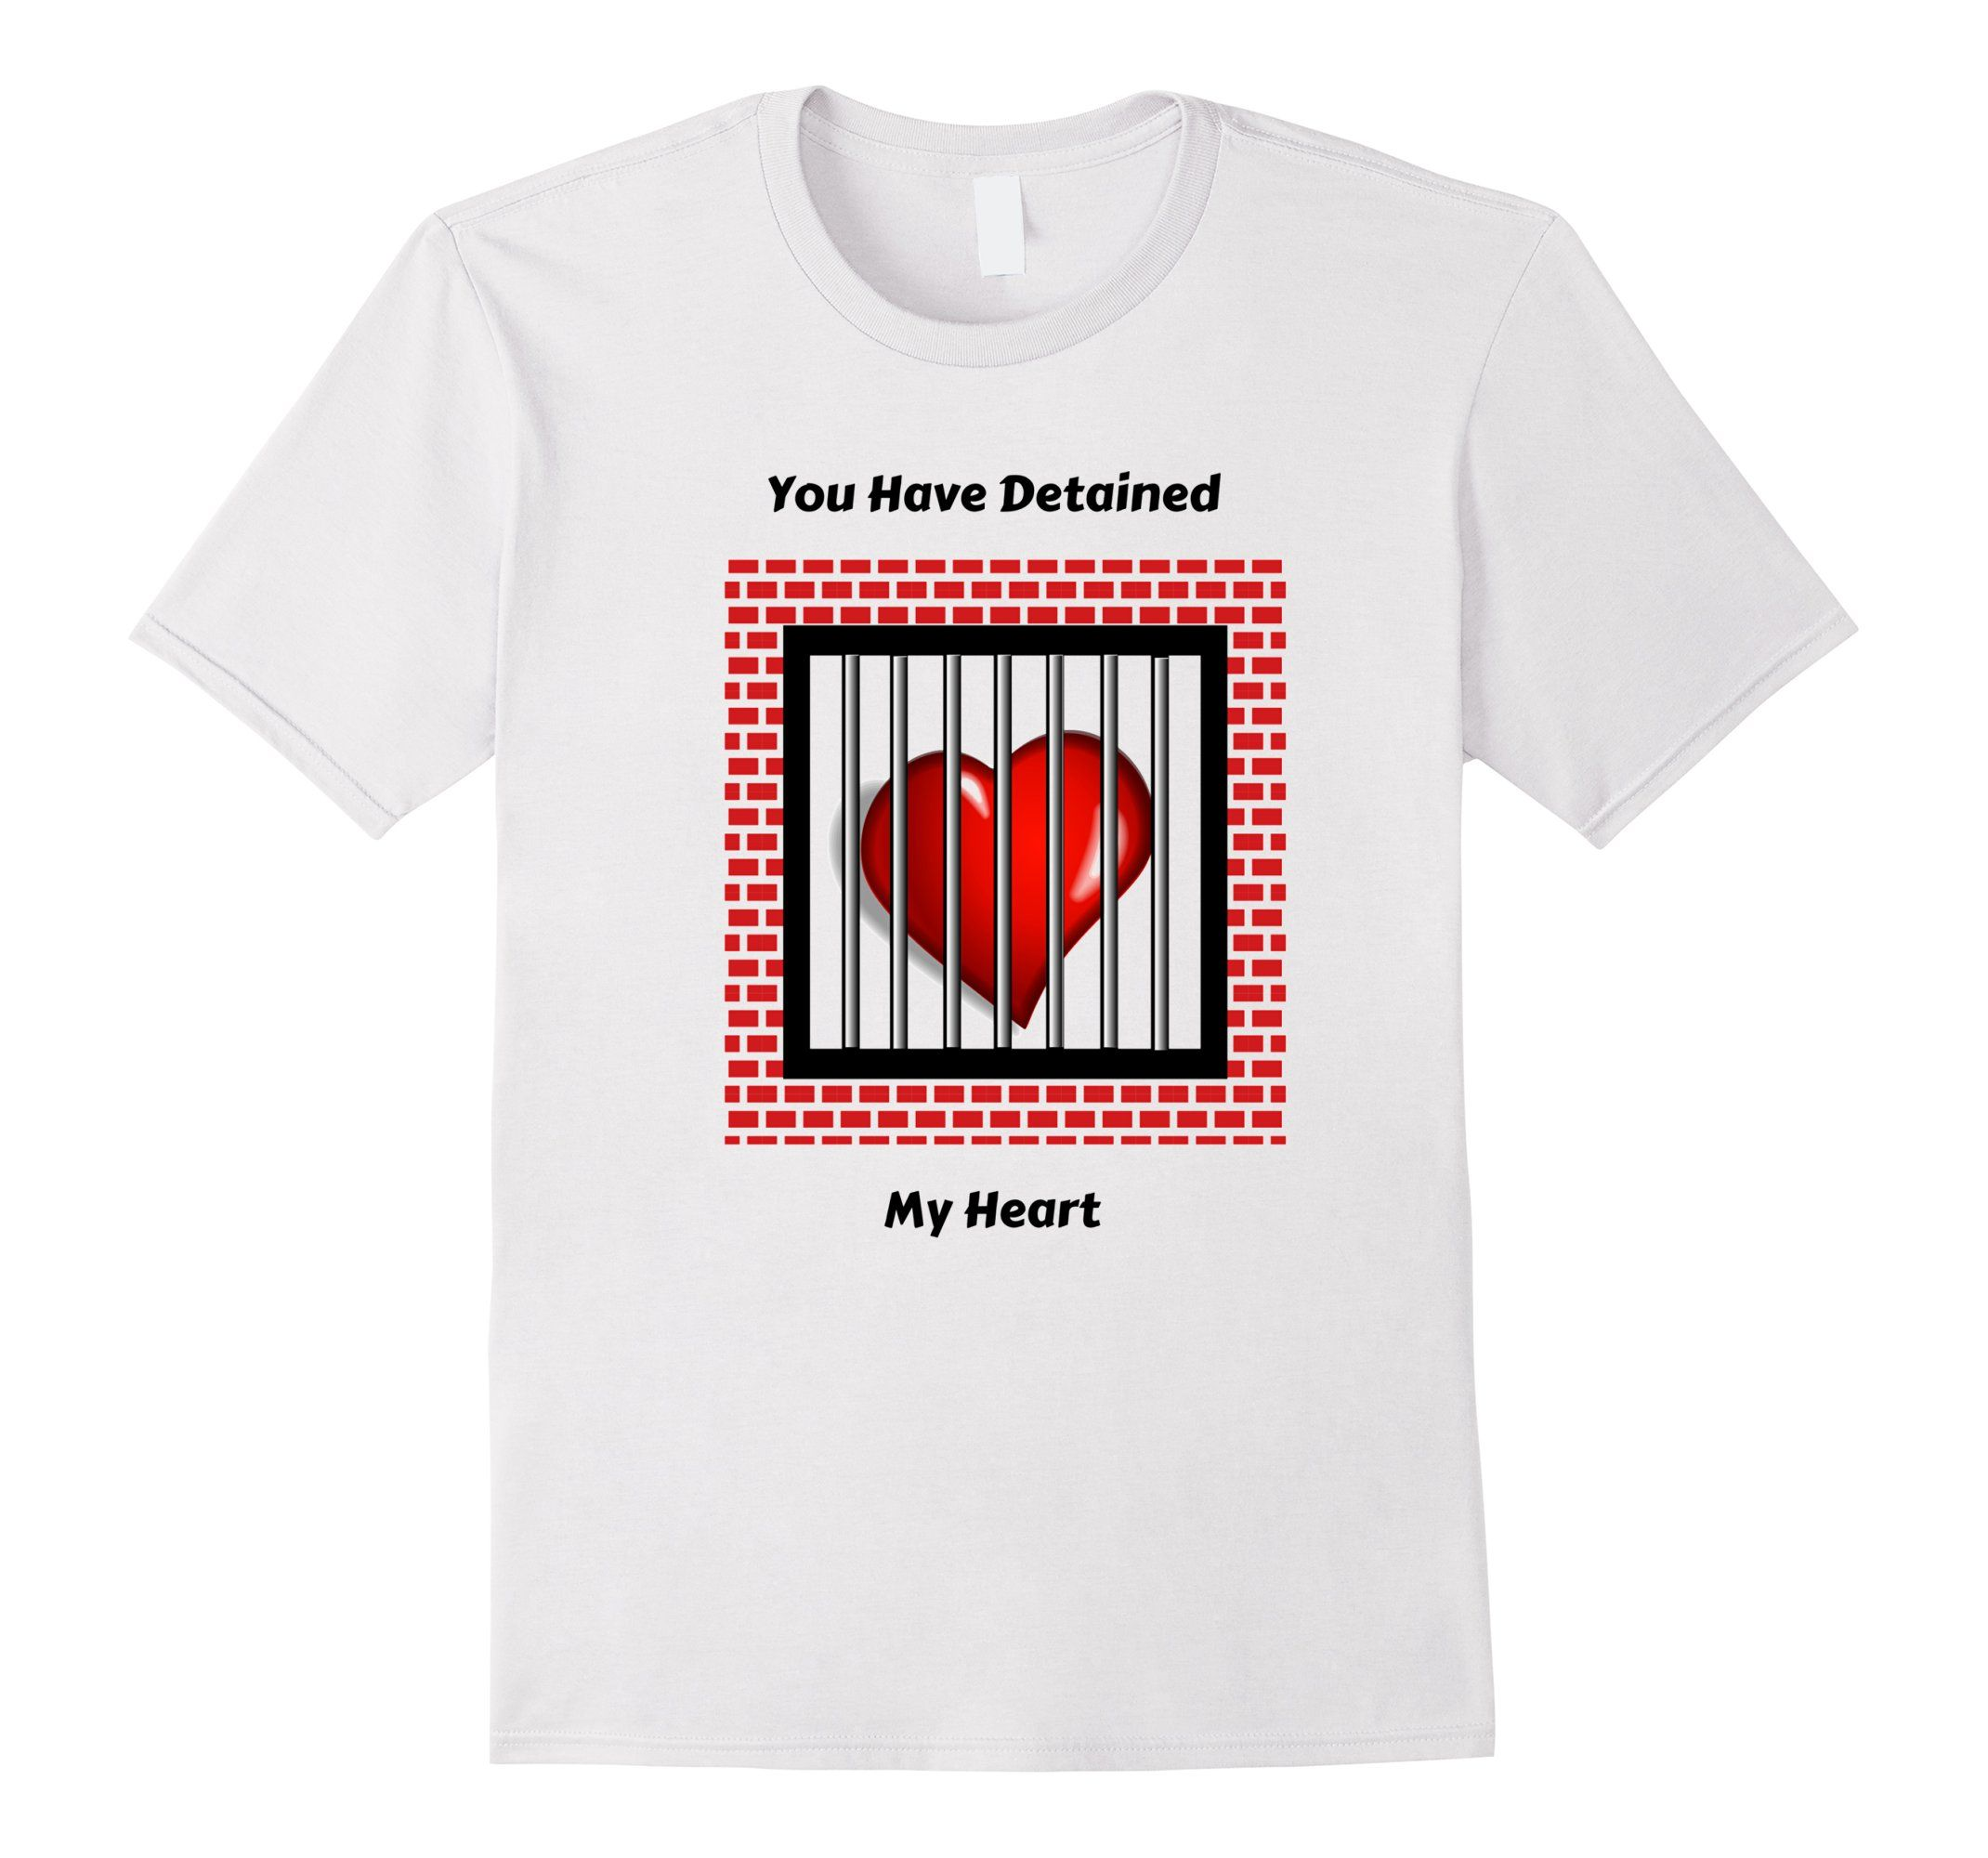 You Have Detained My Heart T Shirt Great For Valentine S Day For Boyfriend Husband Girlfriend Or Wife On Amazon Valentines Day For Boyfriend Shirts T Shirt